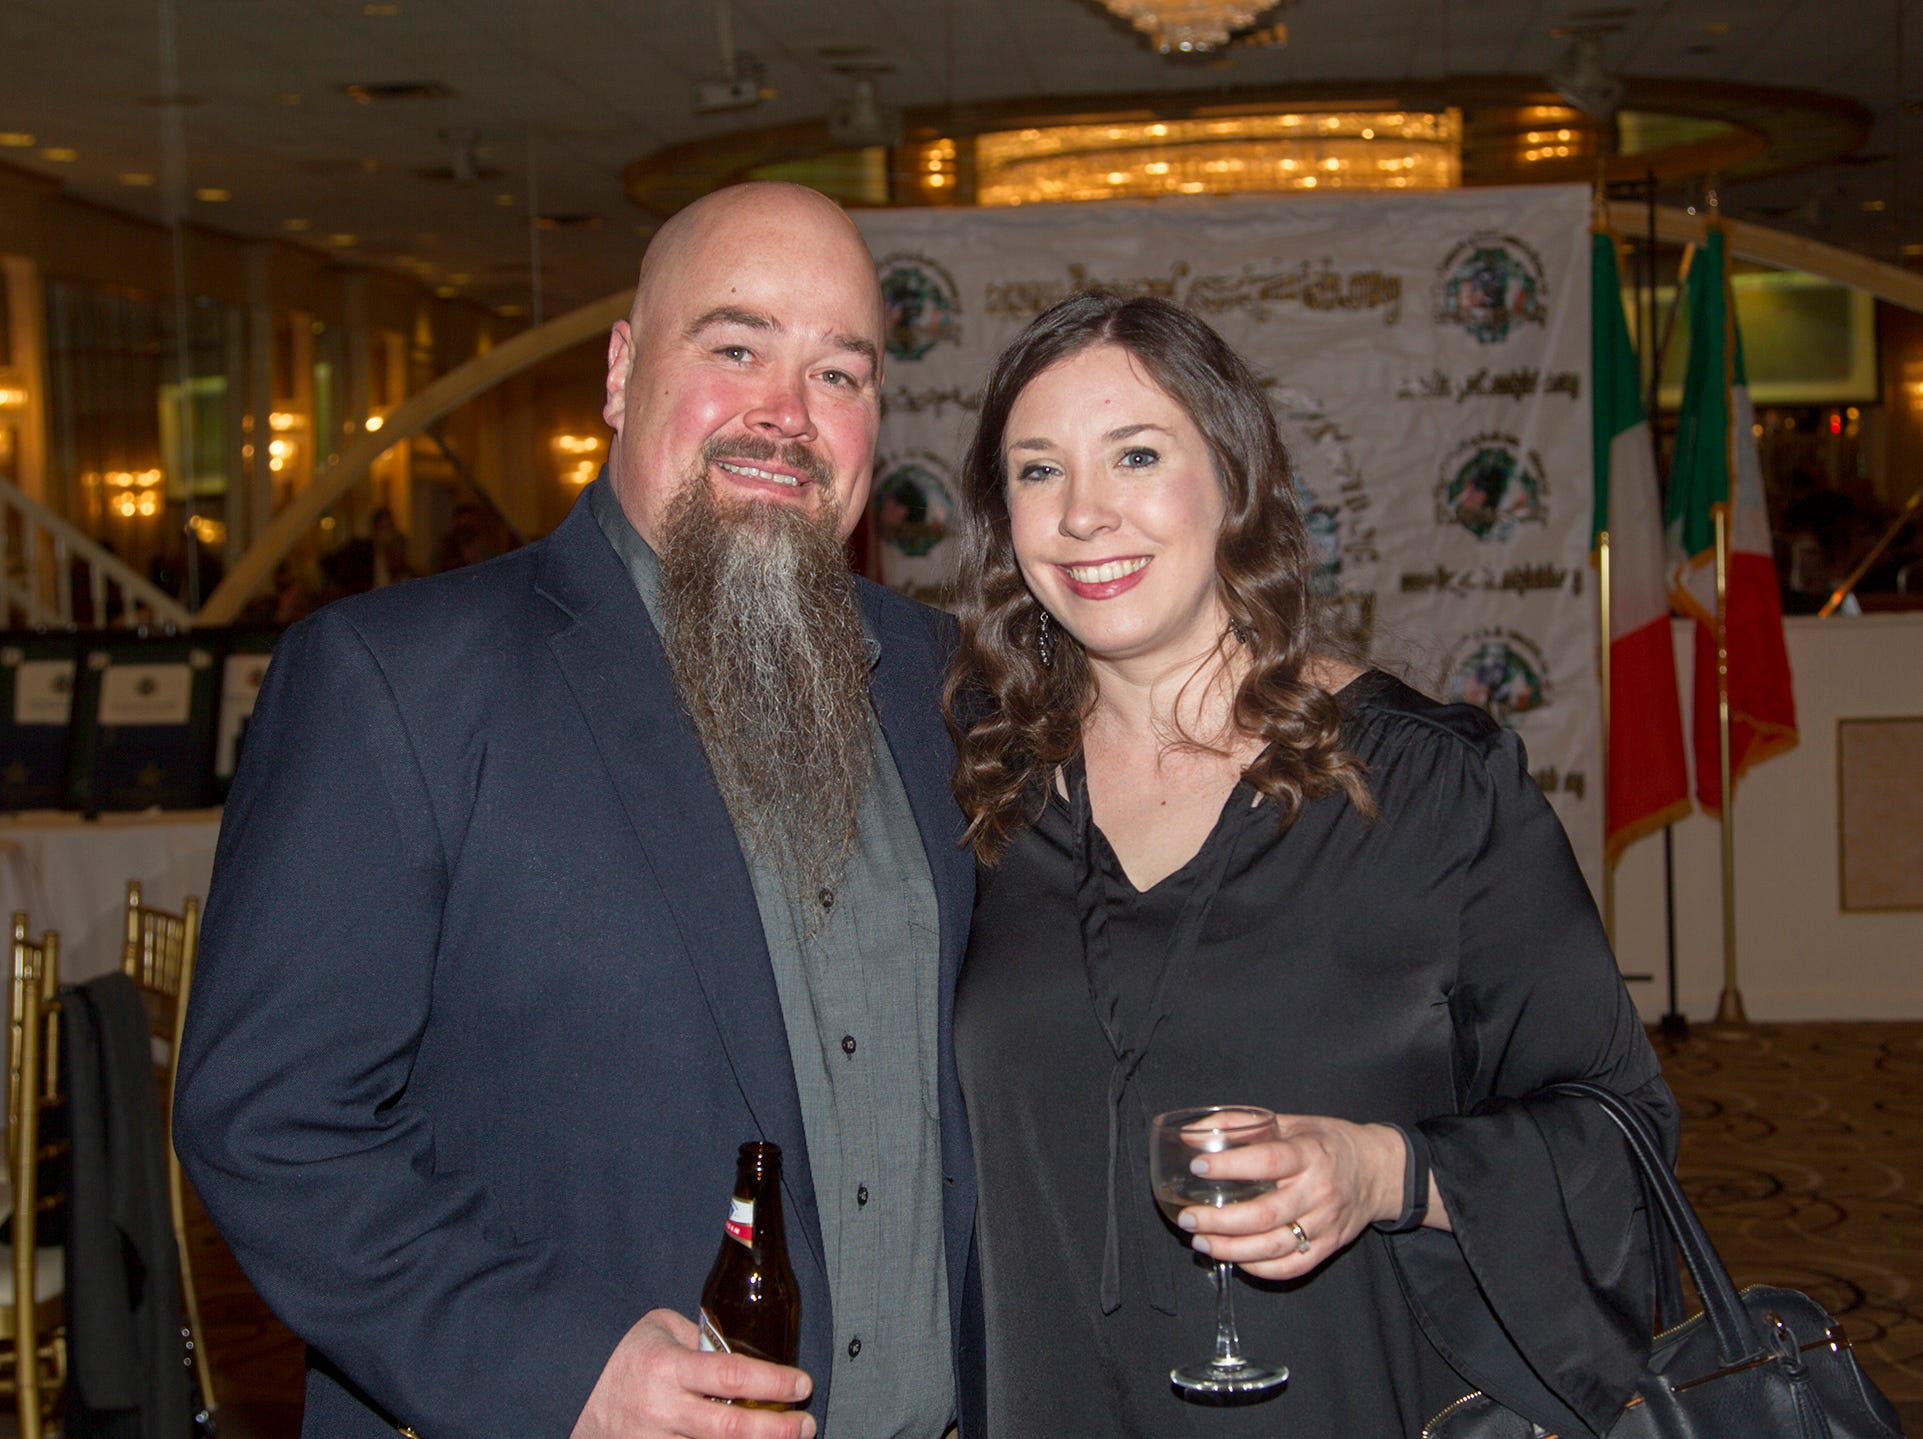 Wayne Hagg, Deirdre O'Reilly. 38th Annual St. Patrick's Day parade Installation Dance at The Graycliff in Moonachie. 2/23/2019